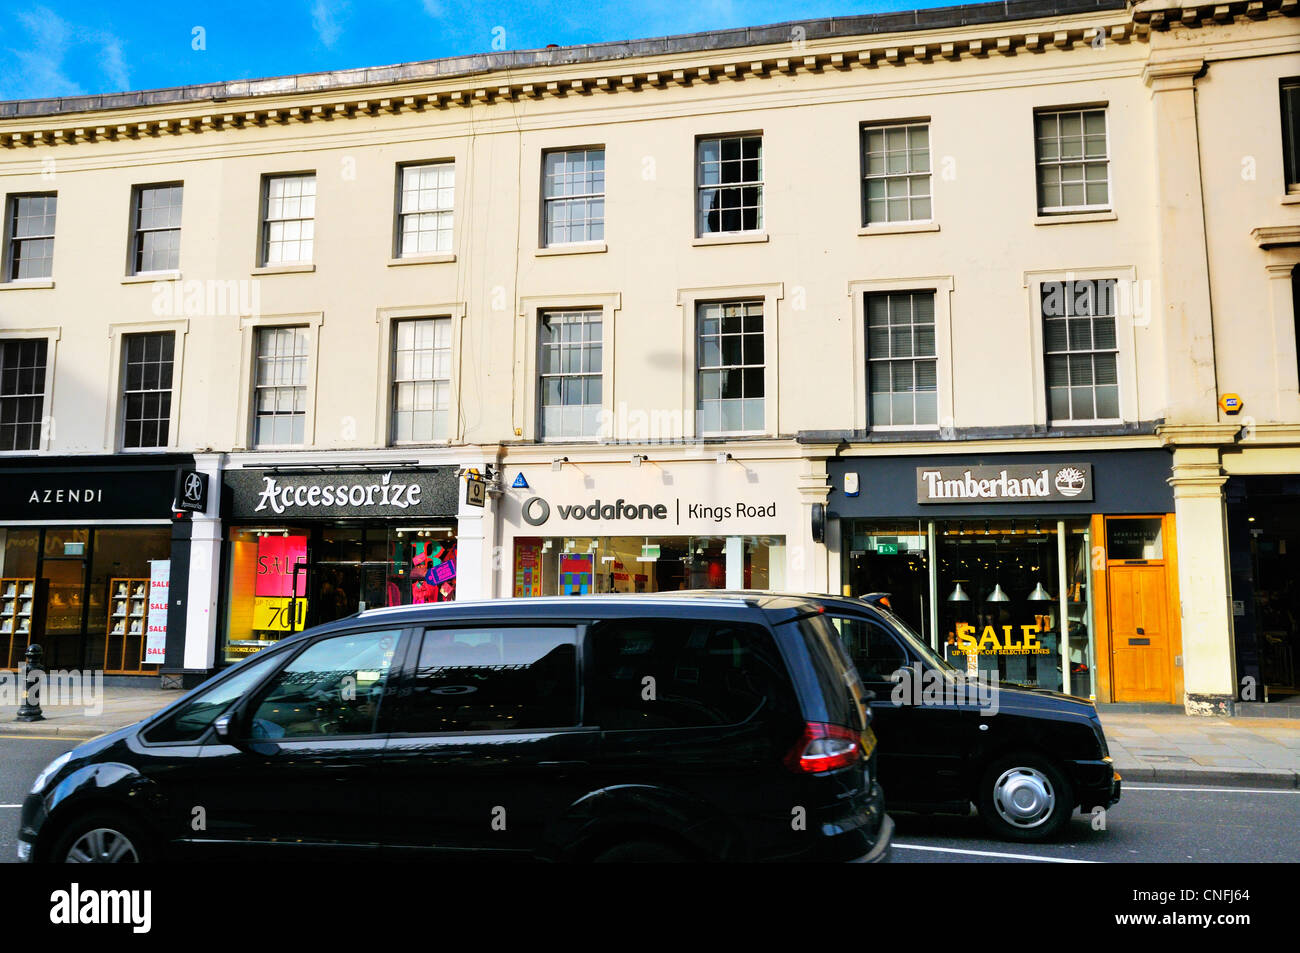 King's road, Chelsea, London, SW3 - Stock Image